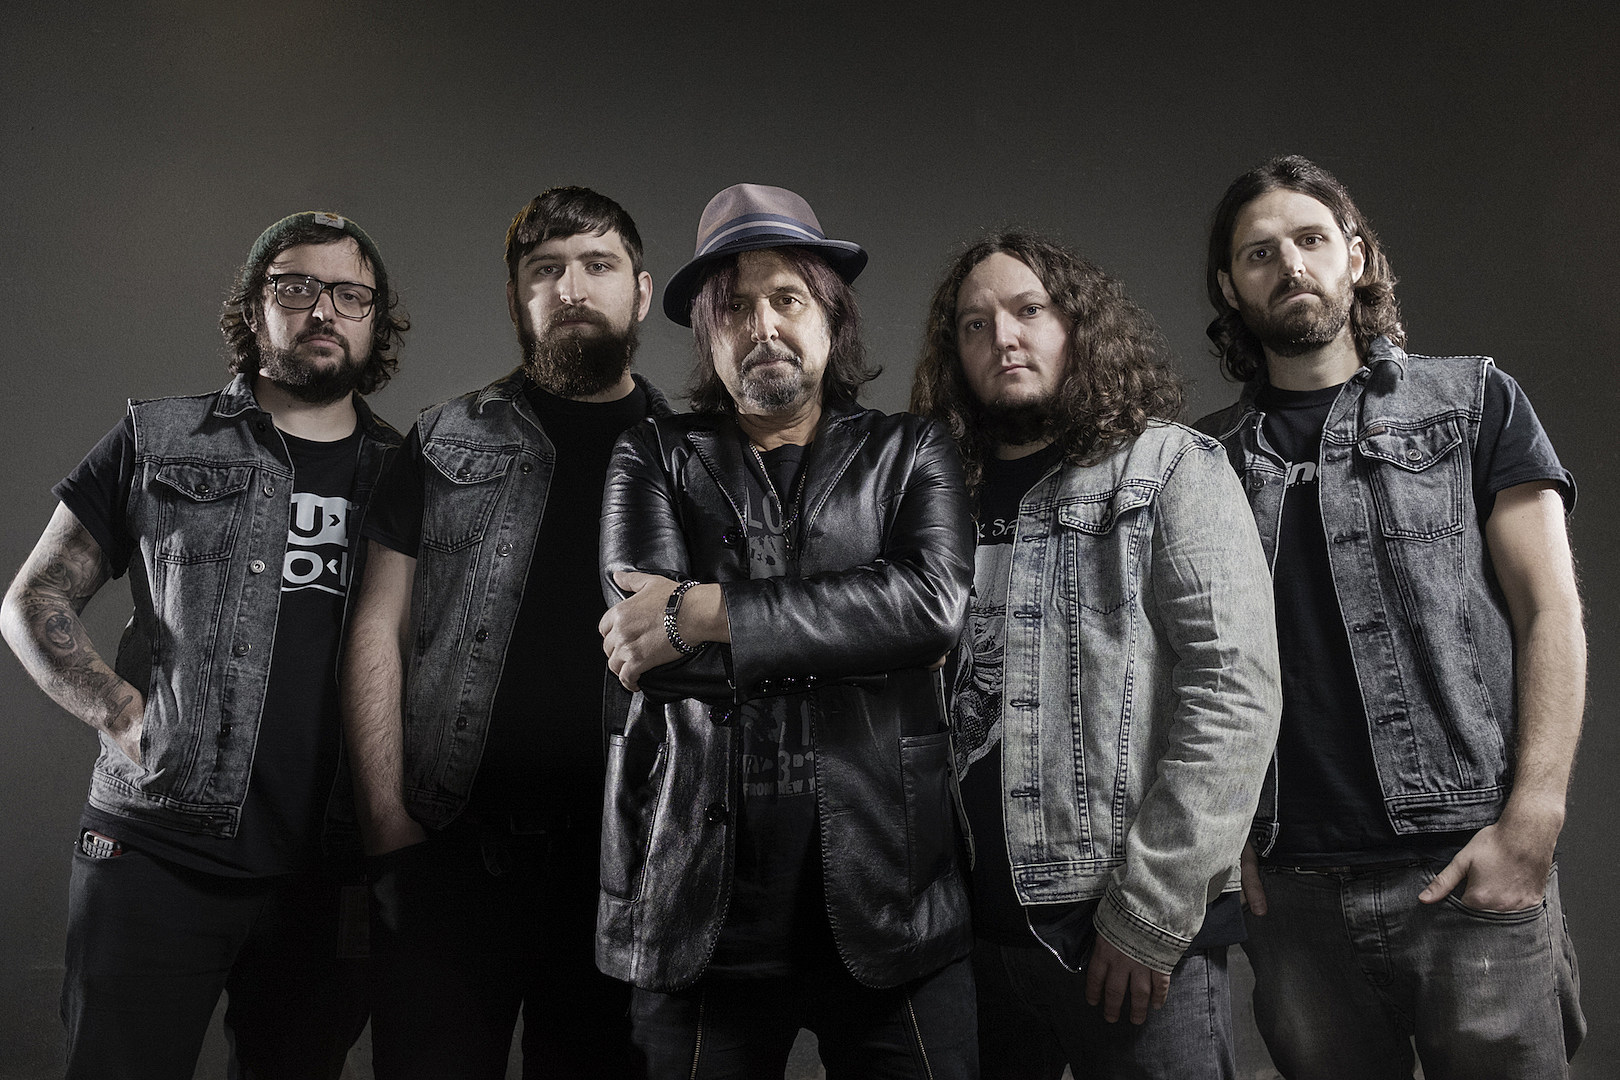 PHIL CAMPBELL & THE BASTARD SONS release new video